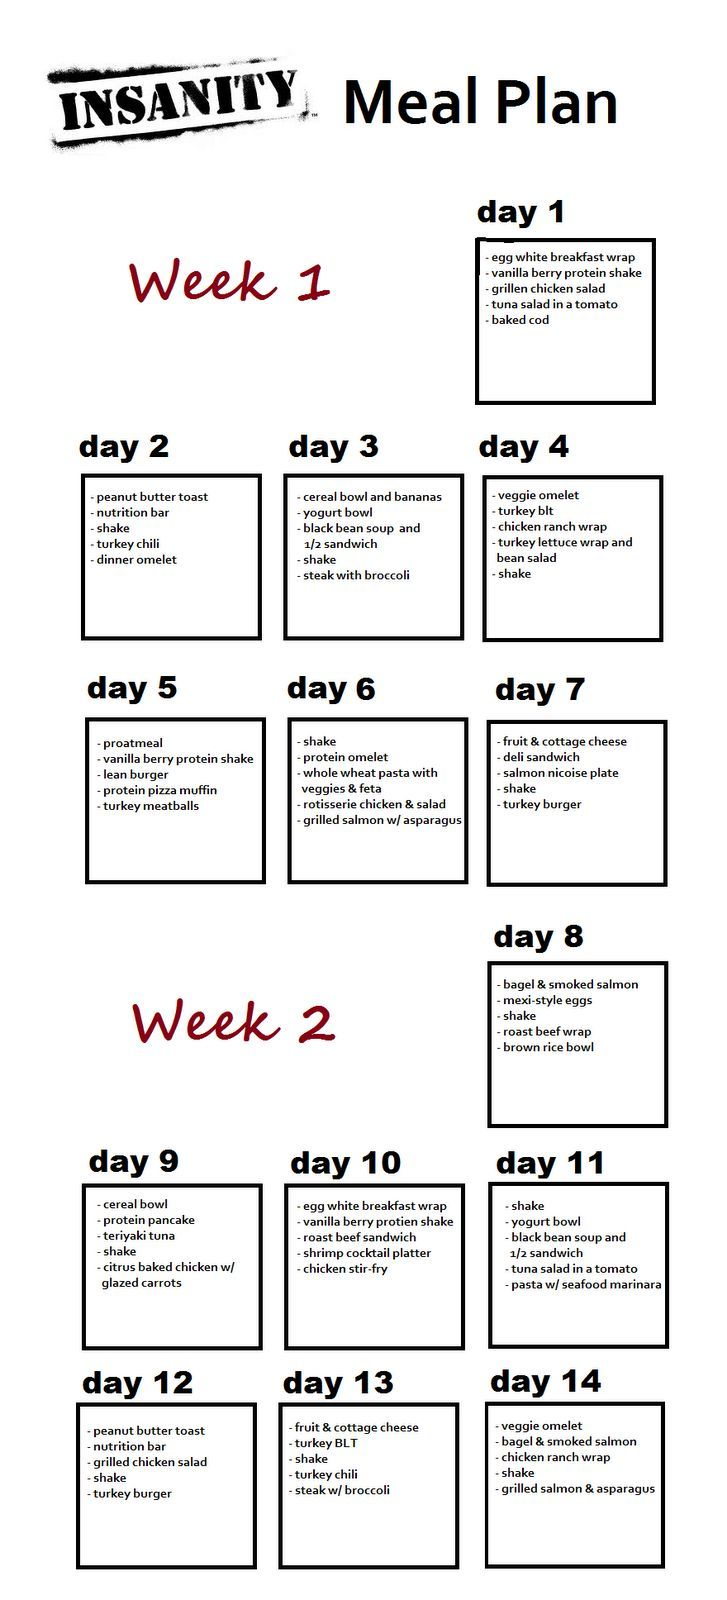 Weeks 1 and 2 of INSANITY meal plan. - Insanity Workout #insanityworkout #fitness #insanity